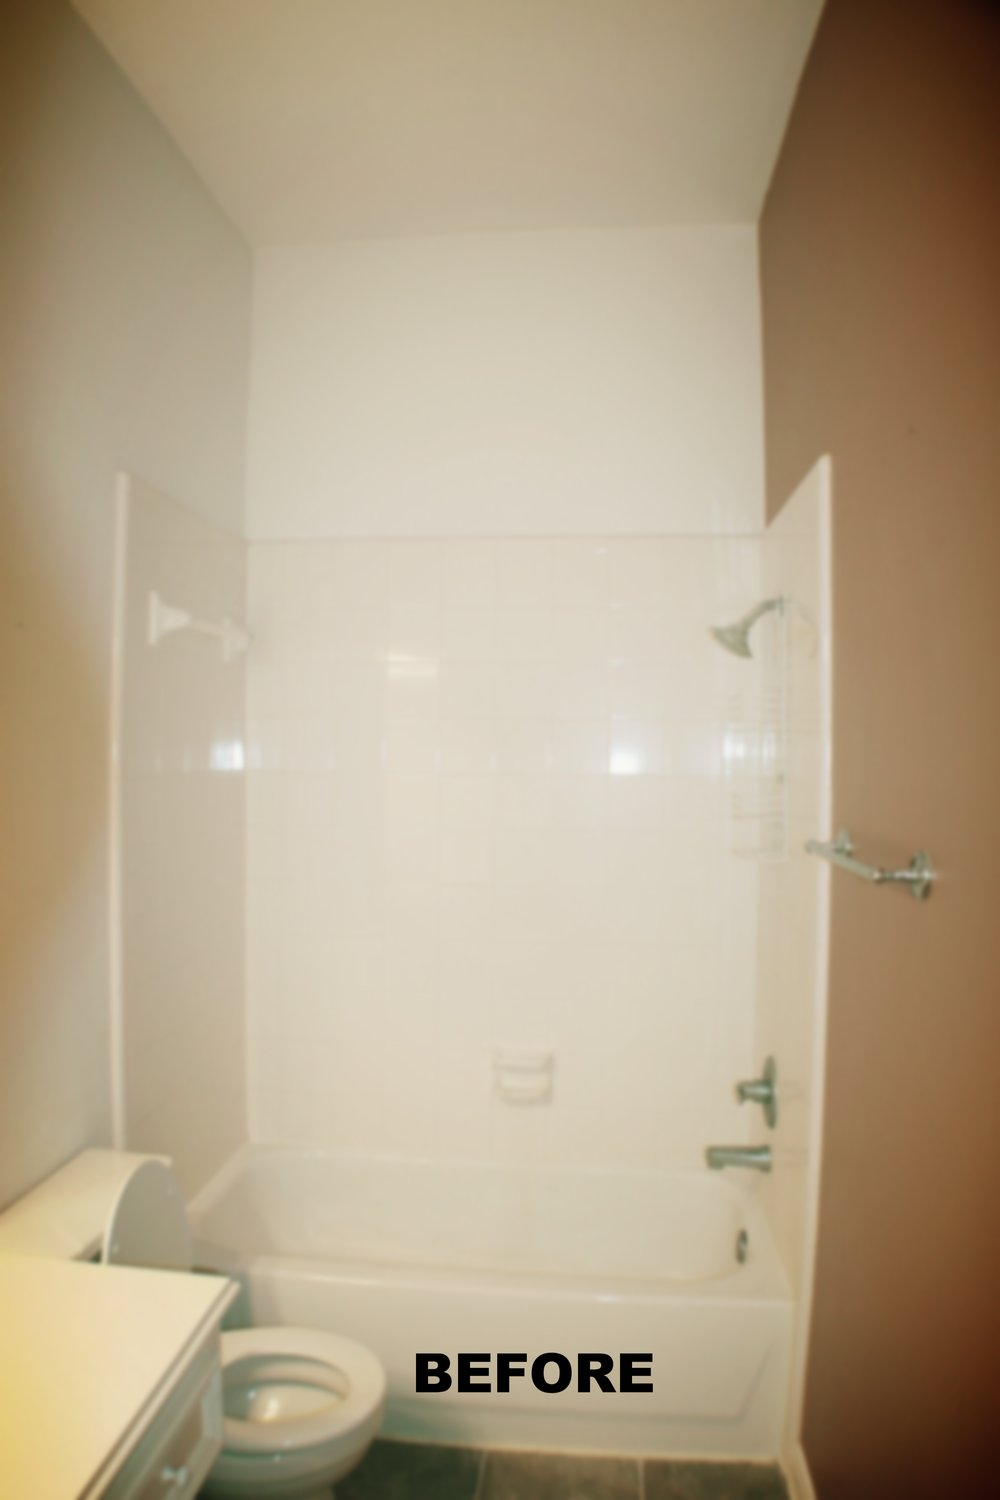 TUBTOSHOWERS CONVERSIONS EZACCESSBATHROOMS.COM 8322028453 COKER 033.JPG